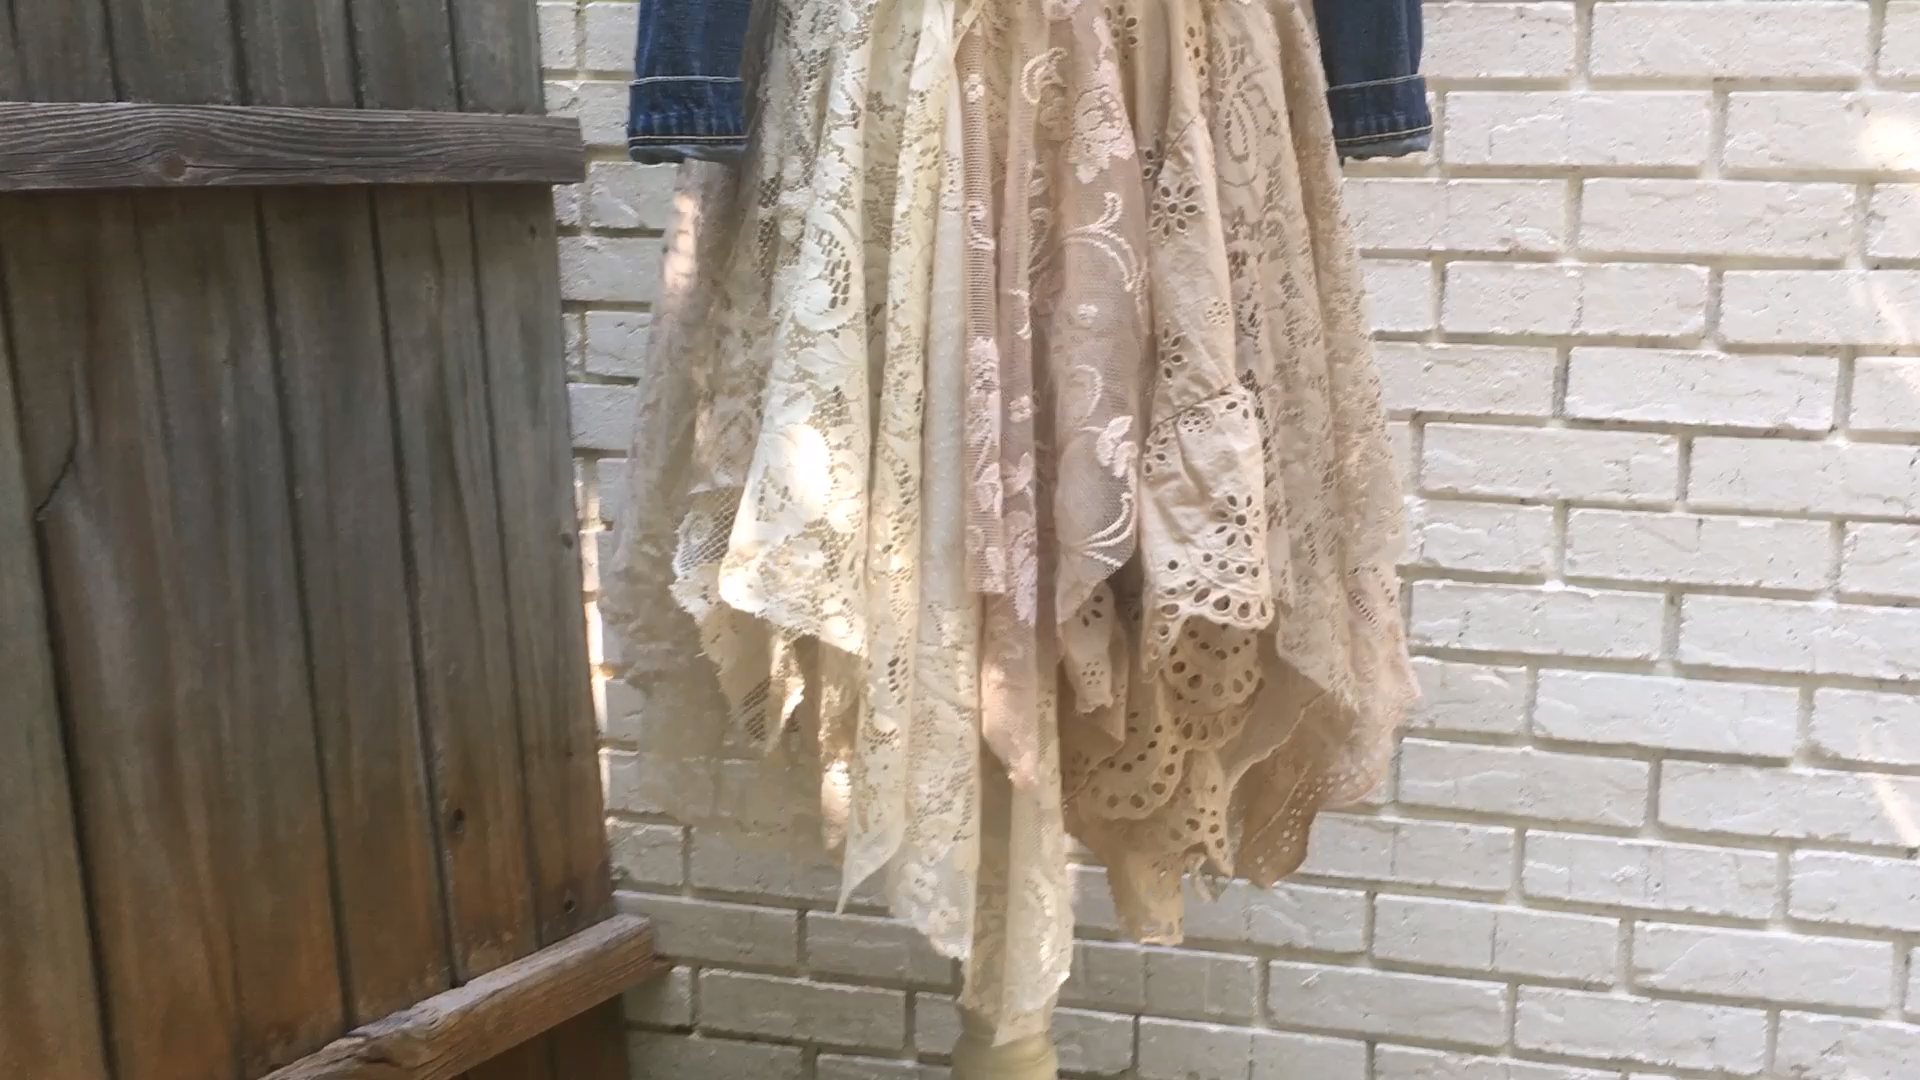 Layered Lace Skirt DIY -   16 DIY Clothes Lace girls ideas